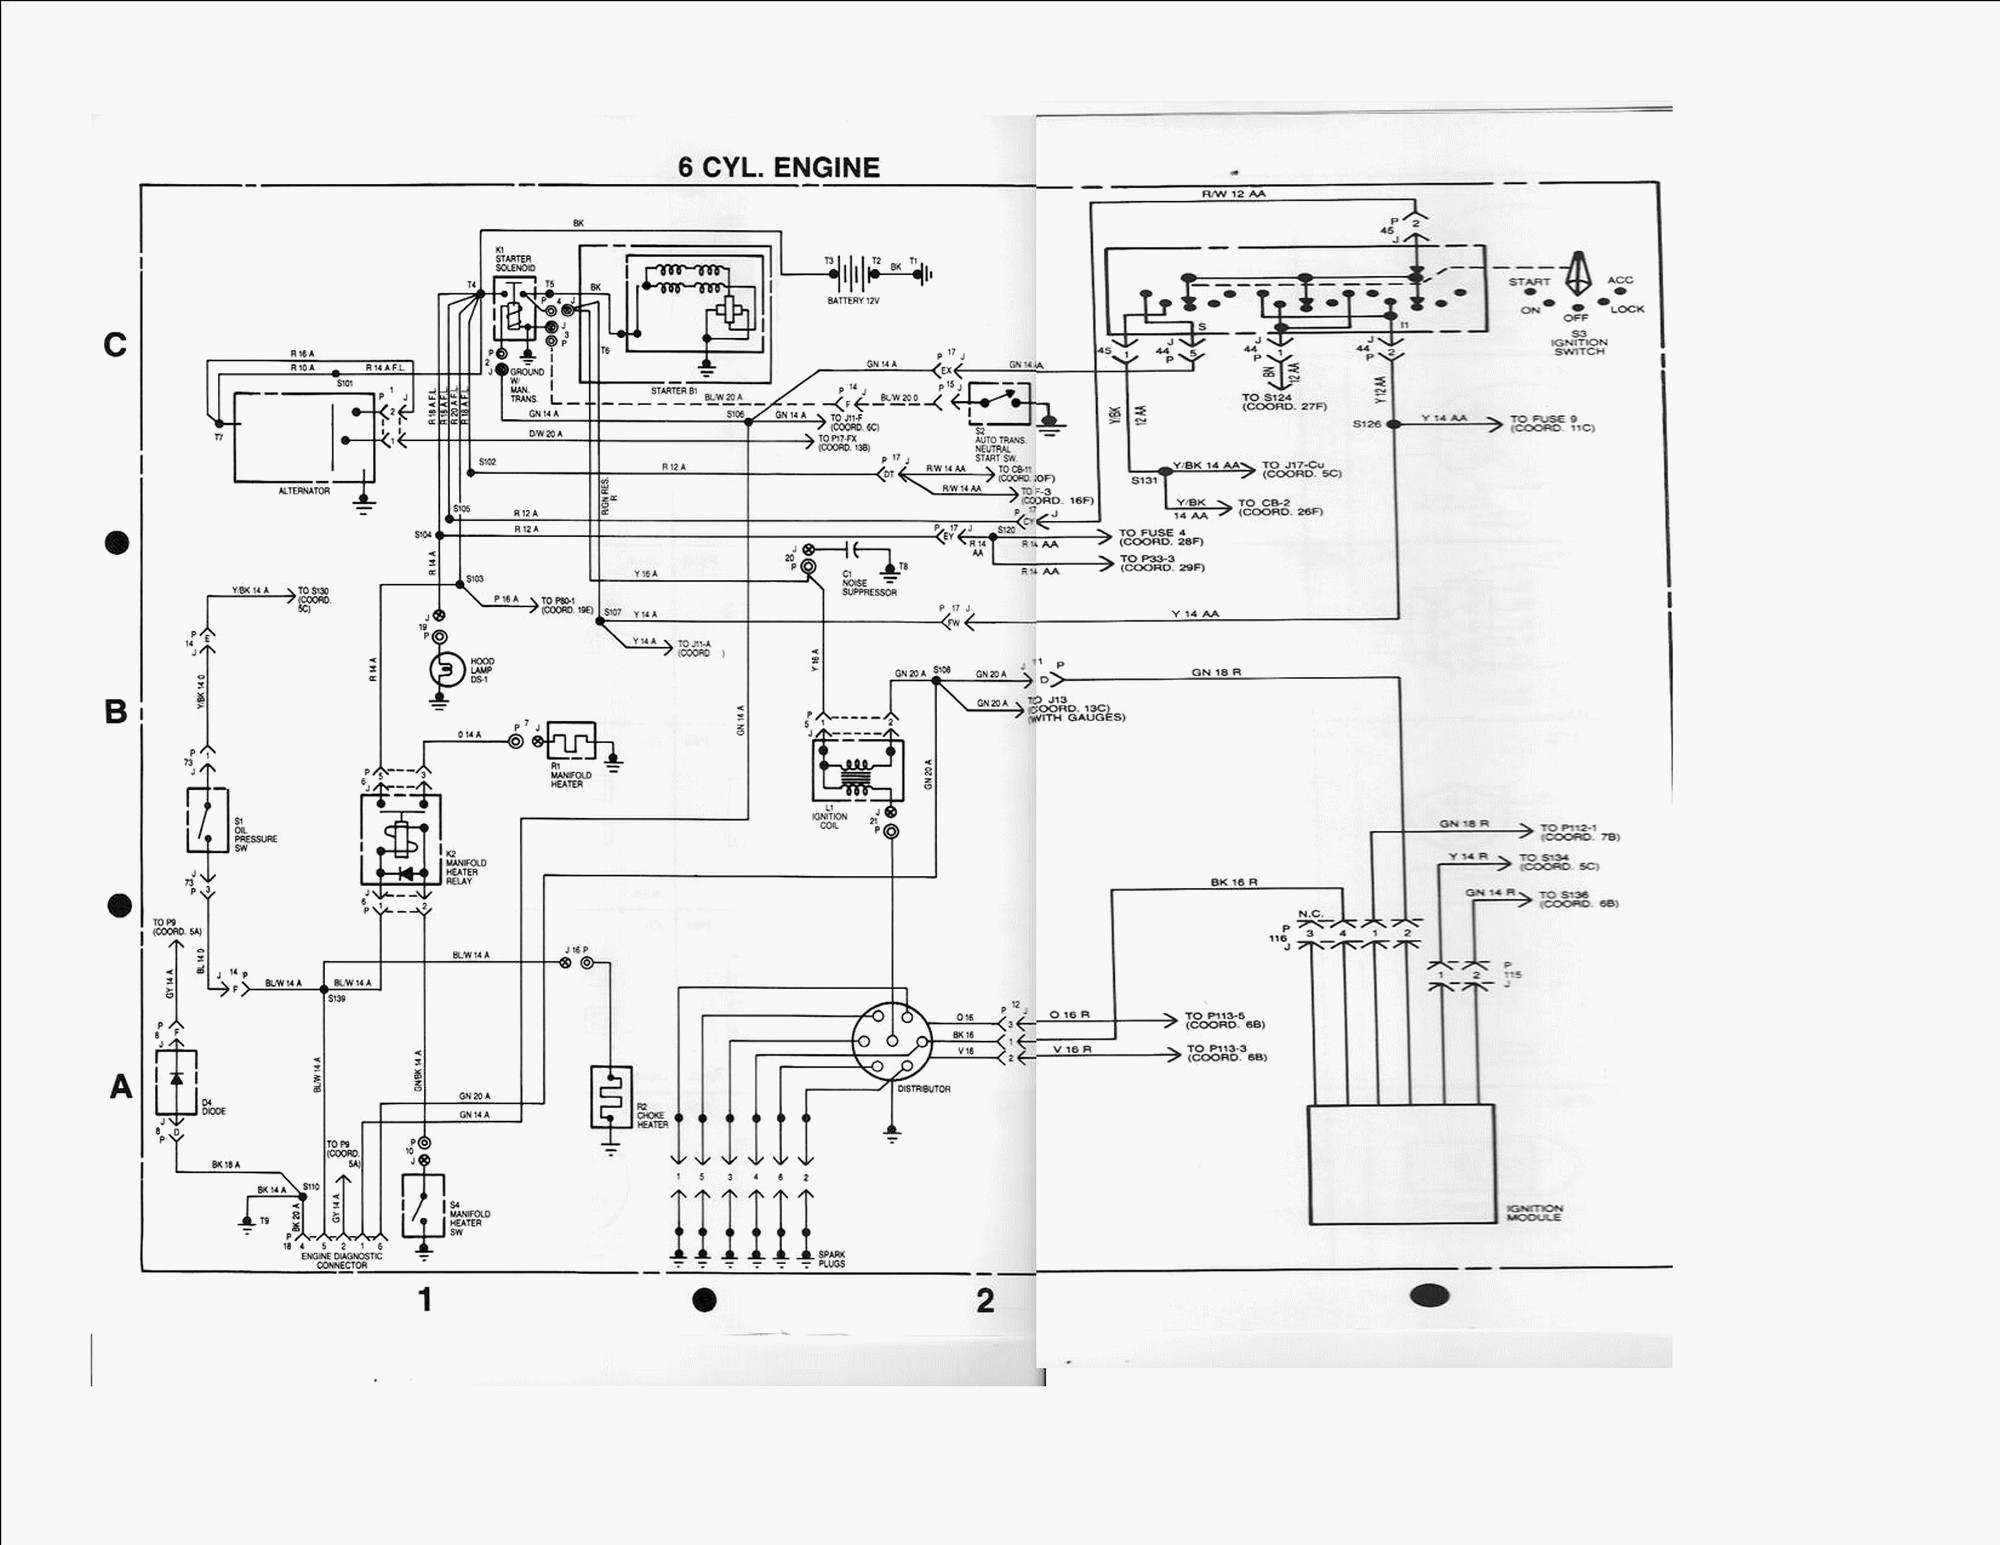 I6 wiring large 2000 amc evolution amc eagle forums \u2022 view topic downloads available eagle lift wiring diagram at gsmx.co